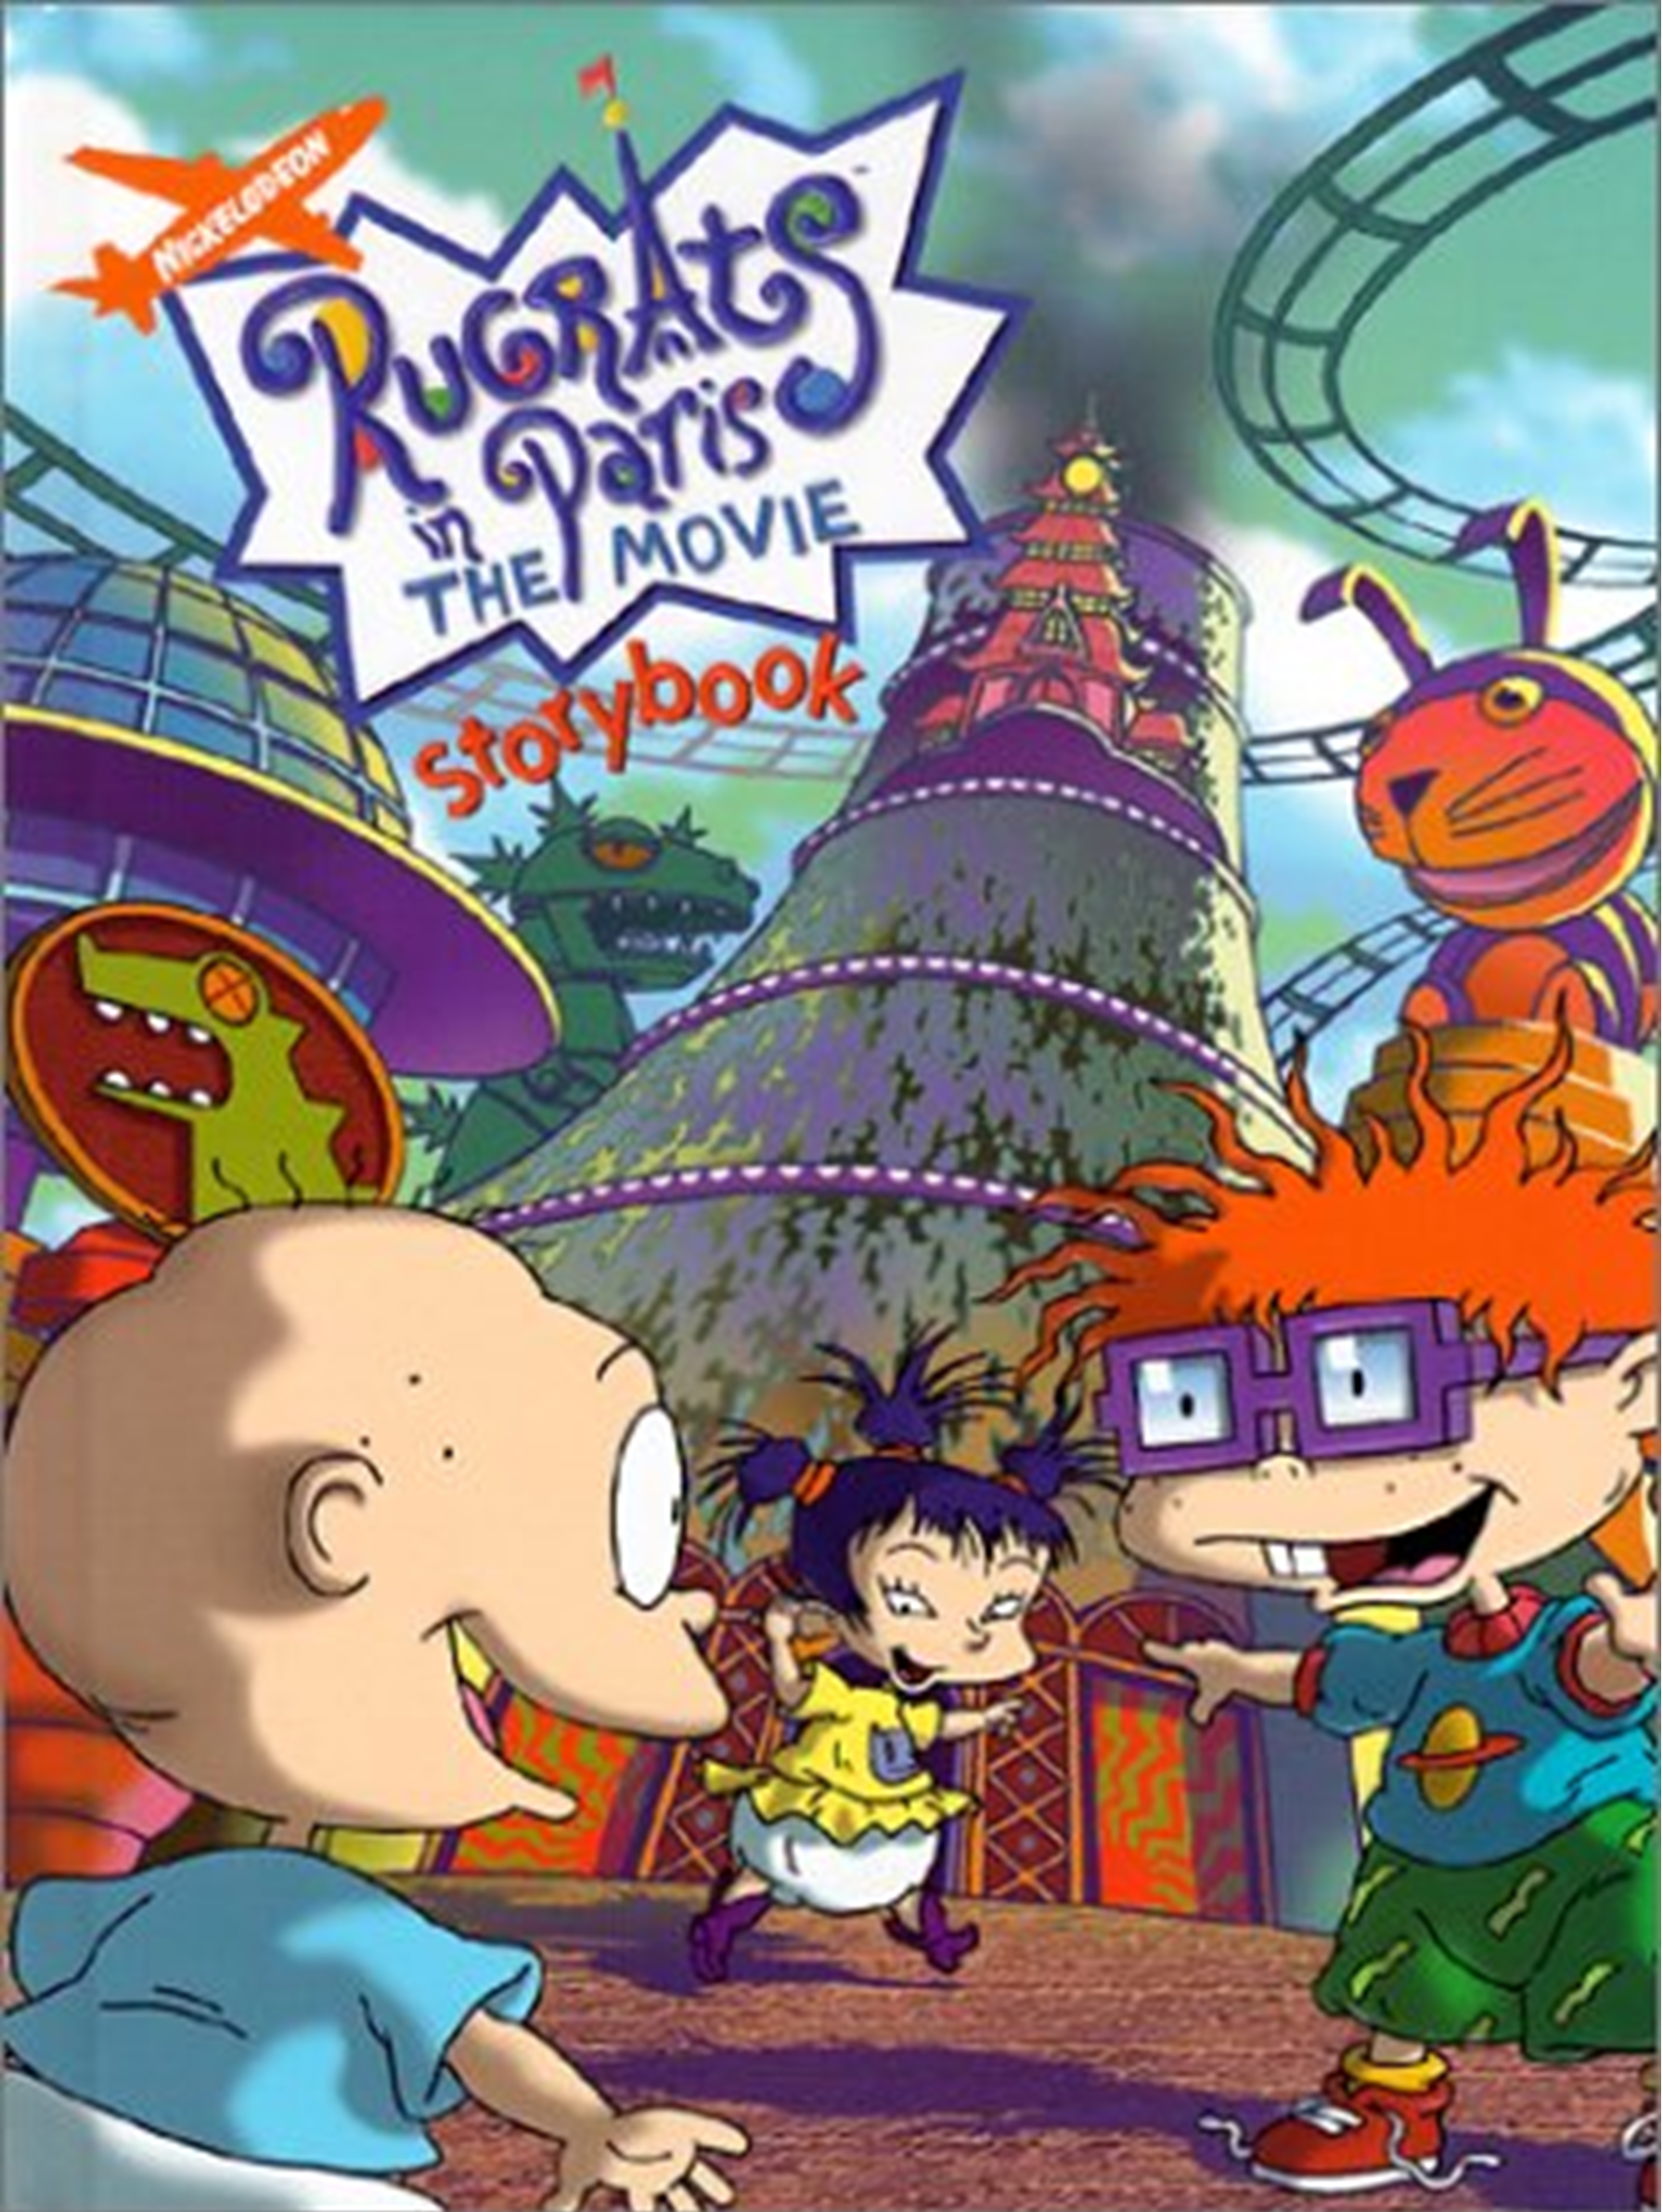 Chuckie Finster/Gallery/Rugrats in Paris: The Movie Storybook